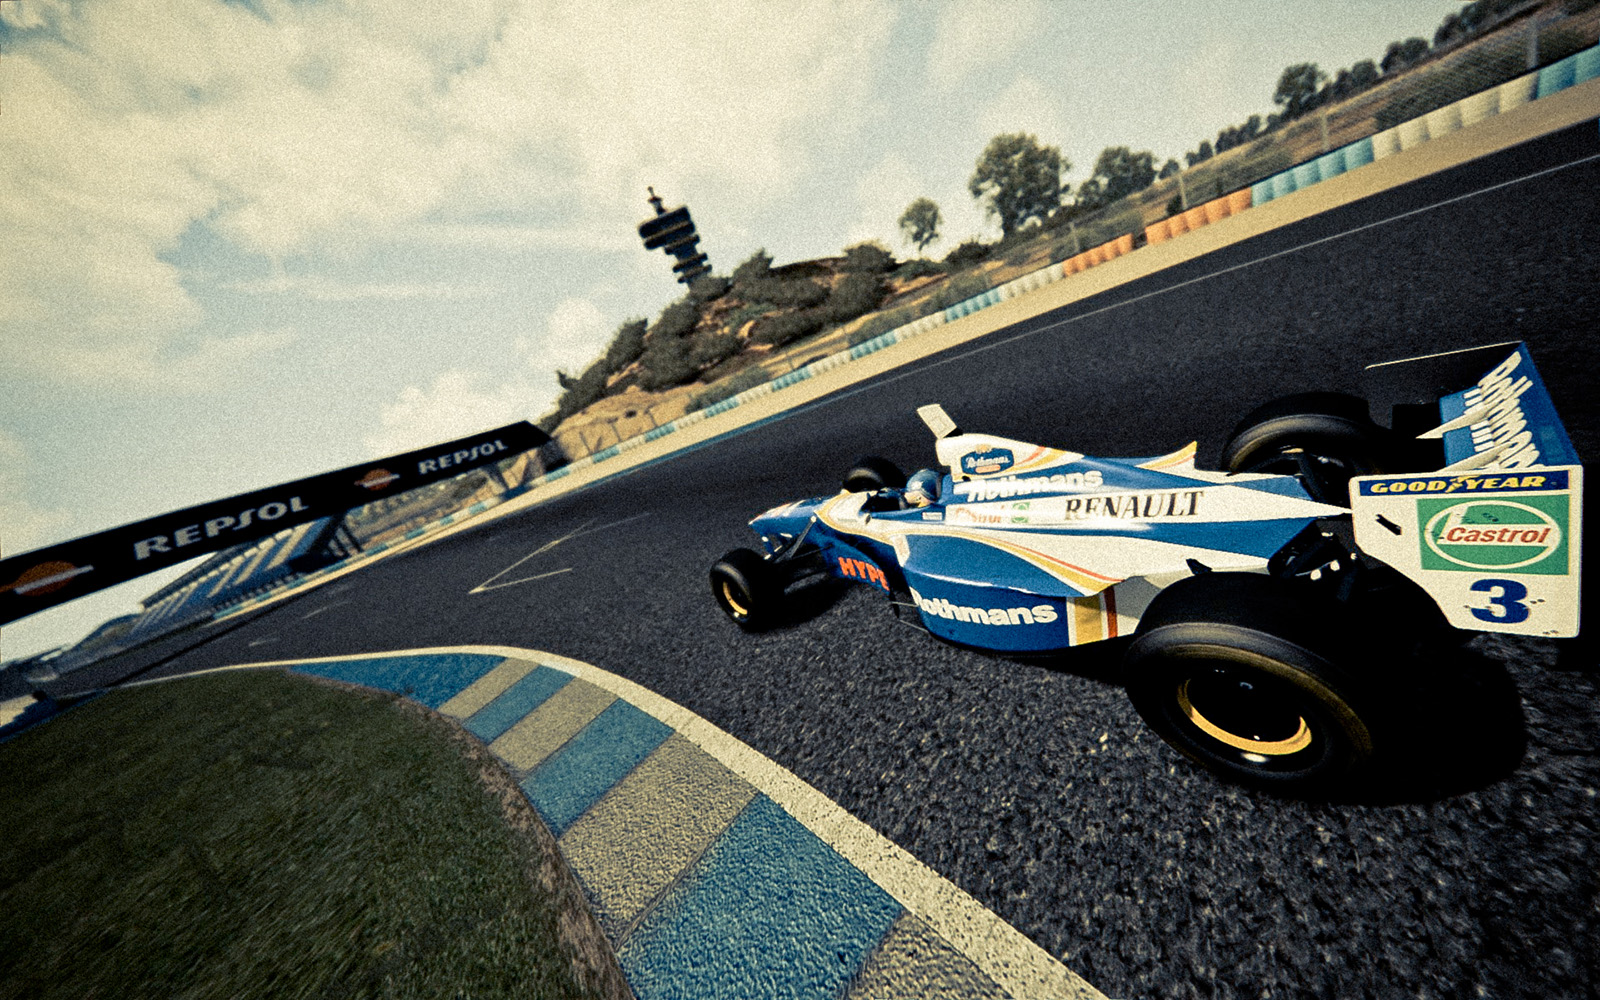 Screenshot_vrc_1997_williams_fw19_jerez_3-8-117-23-46-56.jpg